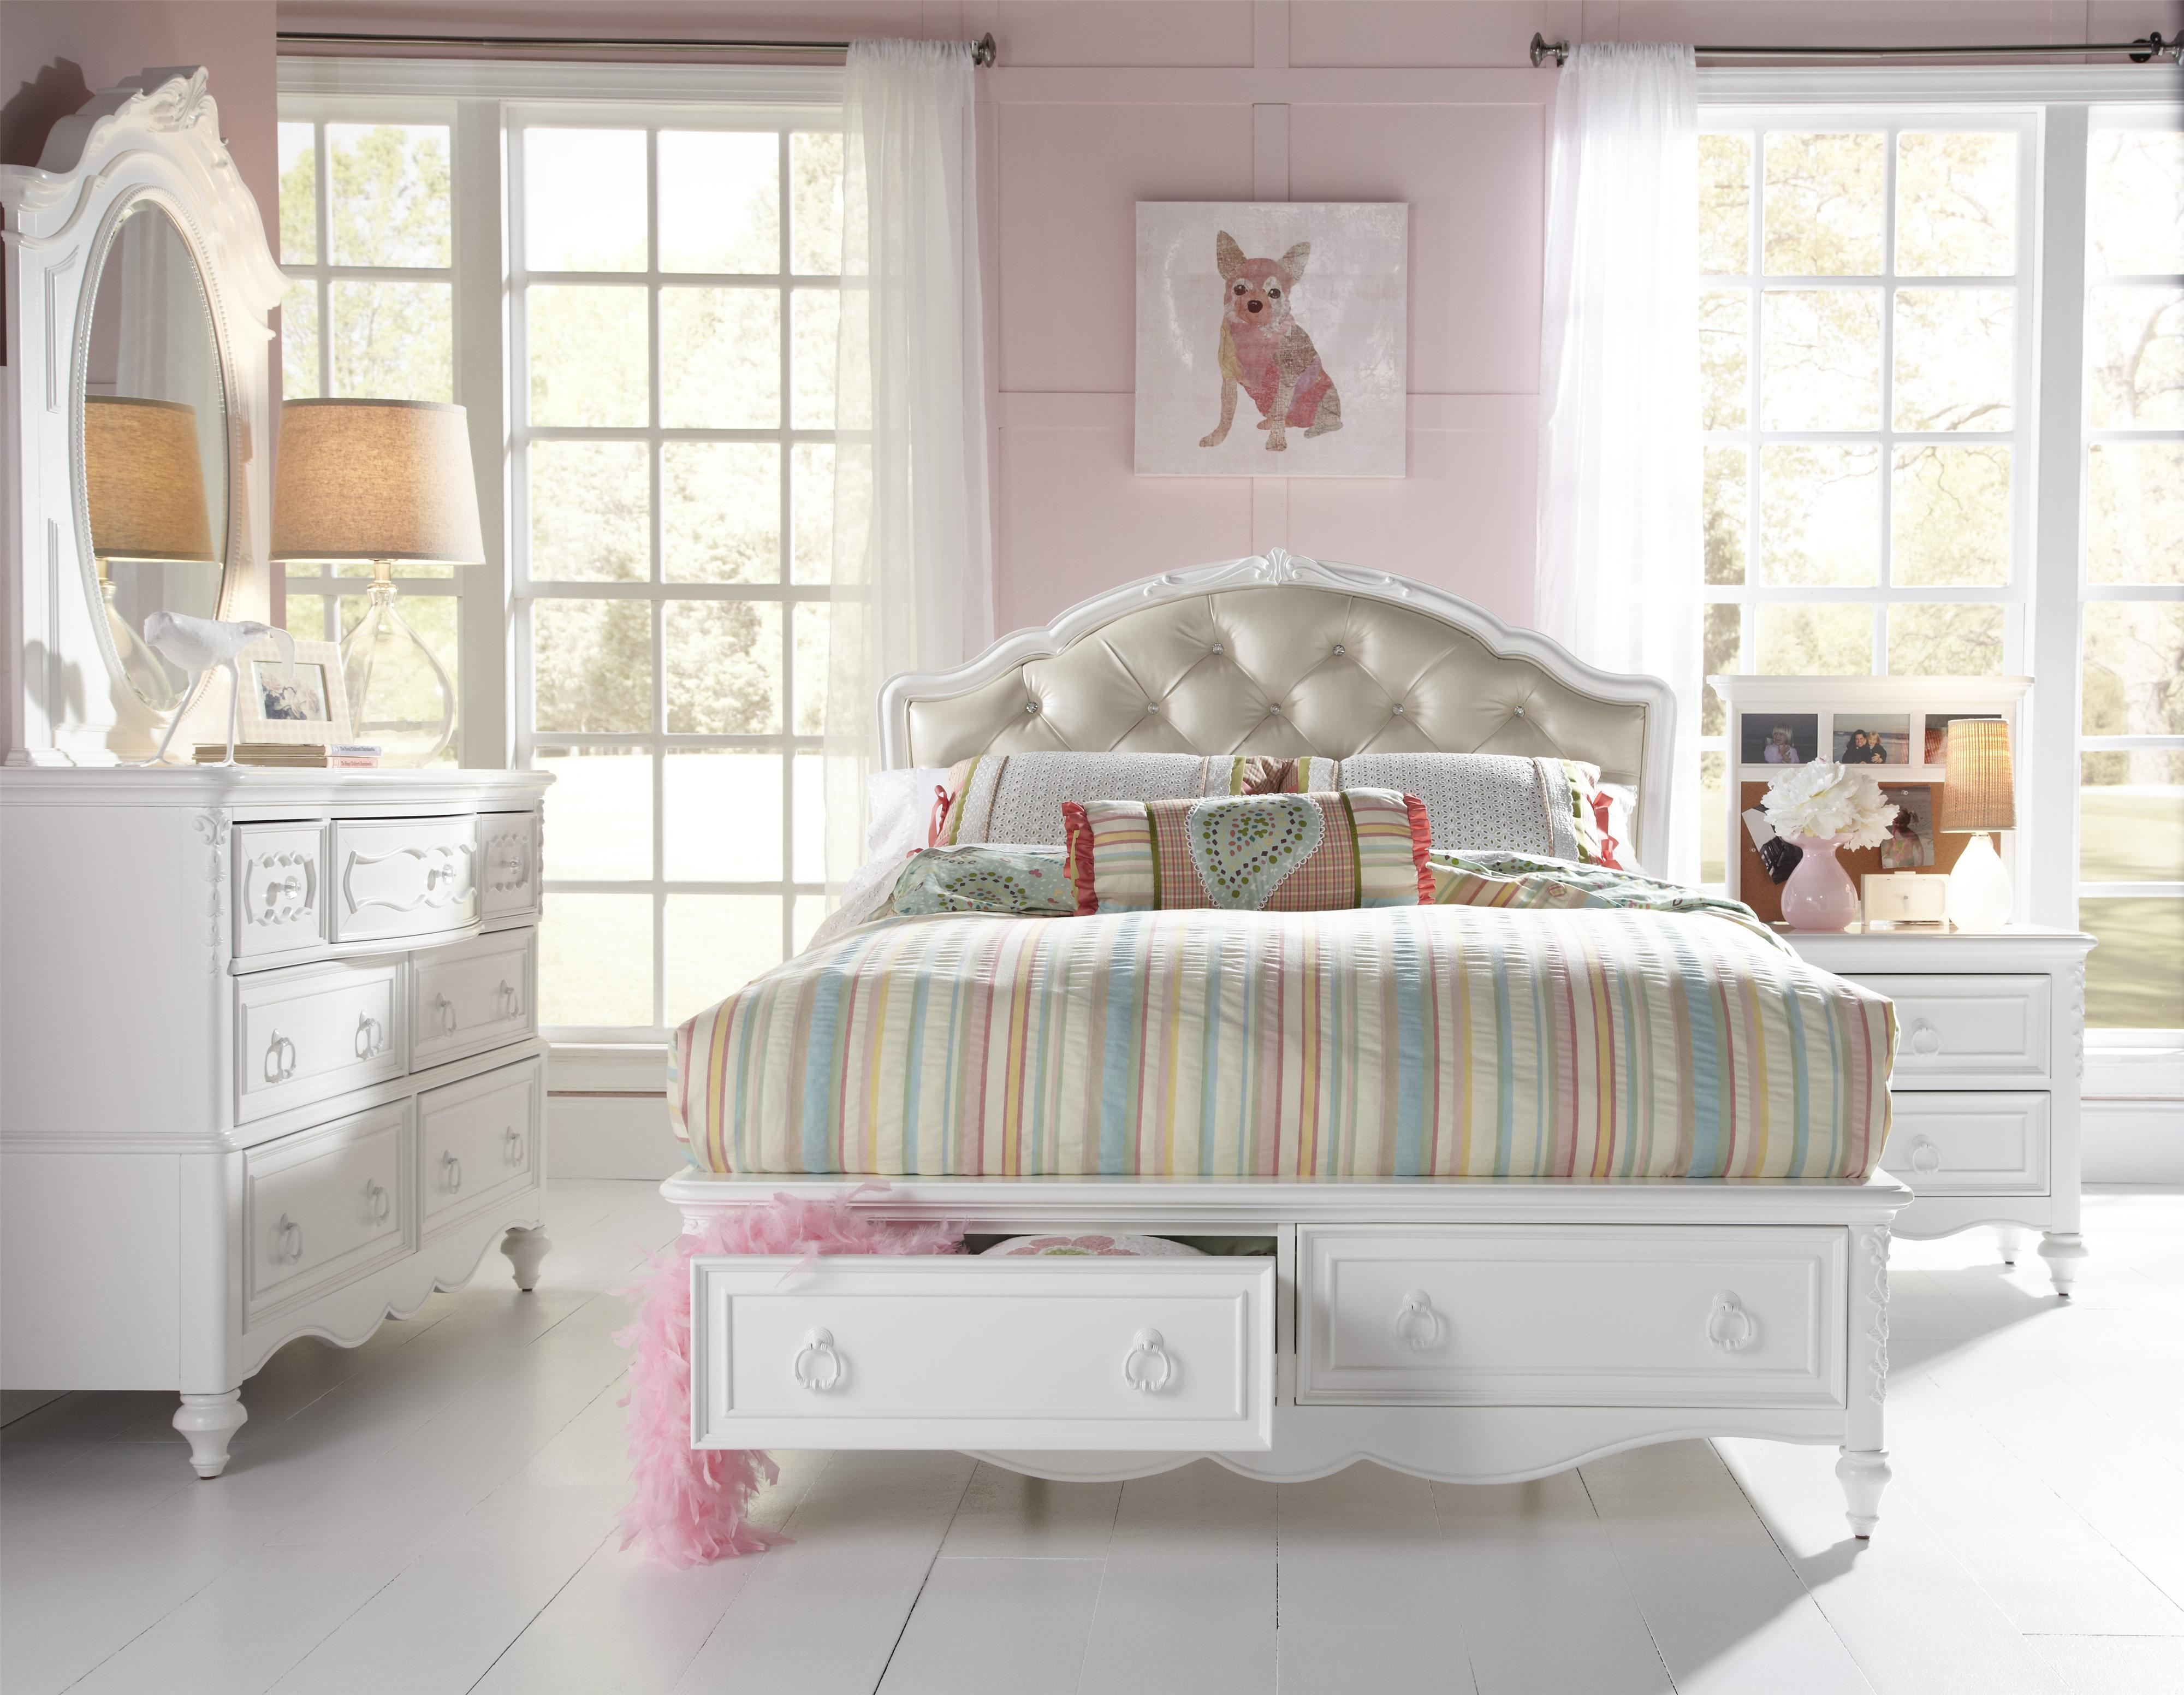 Victorian king storage beds with drawers - Morris Home Furnishings Sarasota Sarasota Full Storage Bed Item Number 8470 637